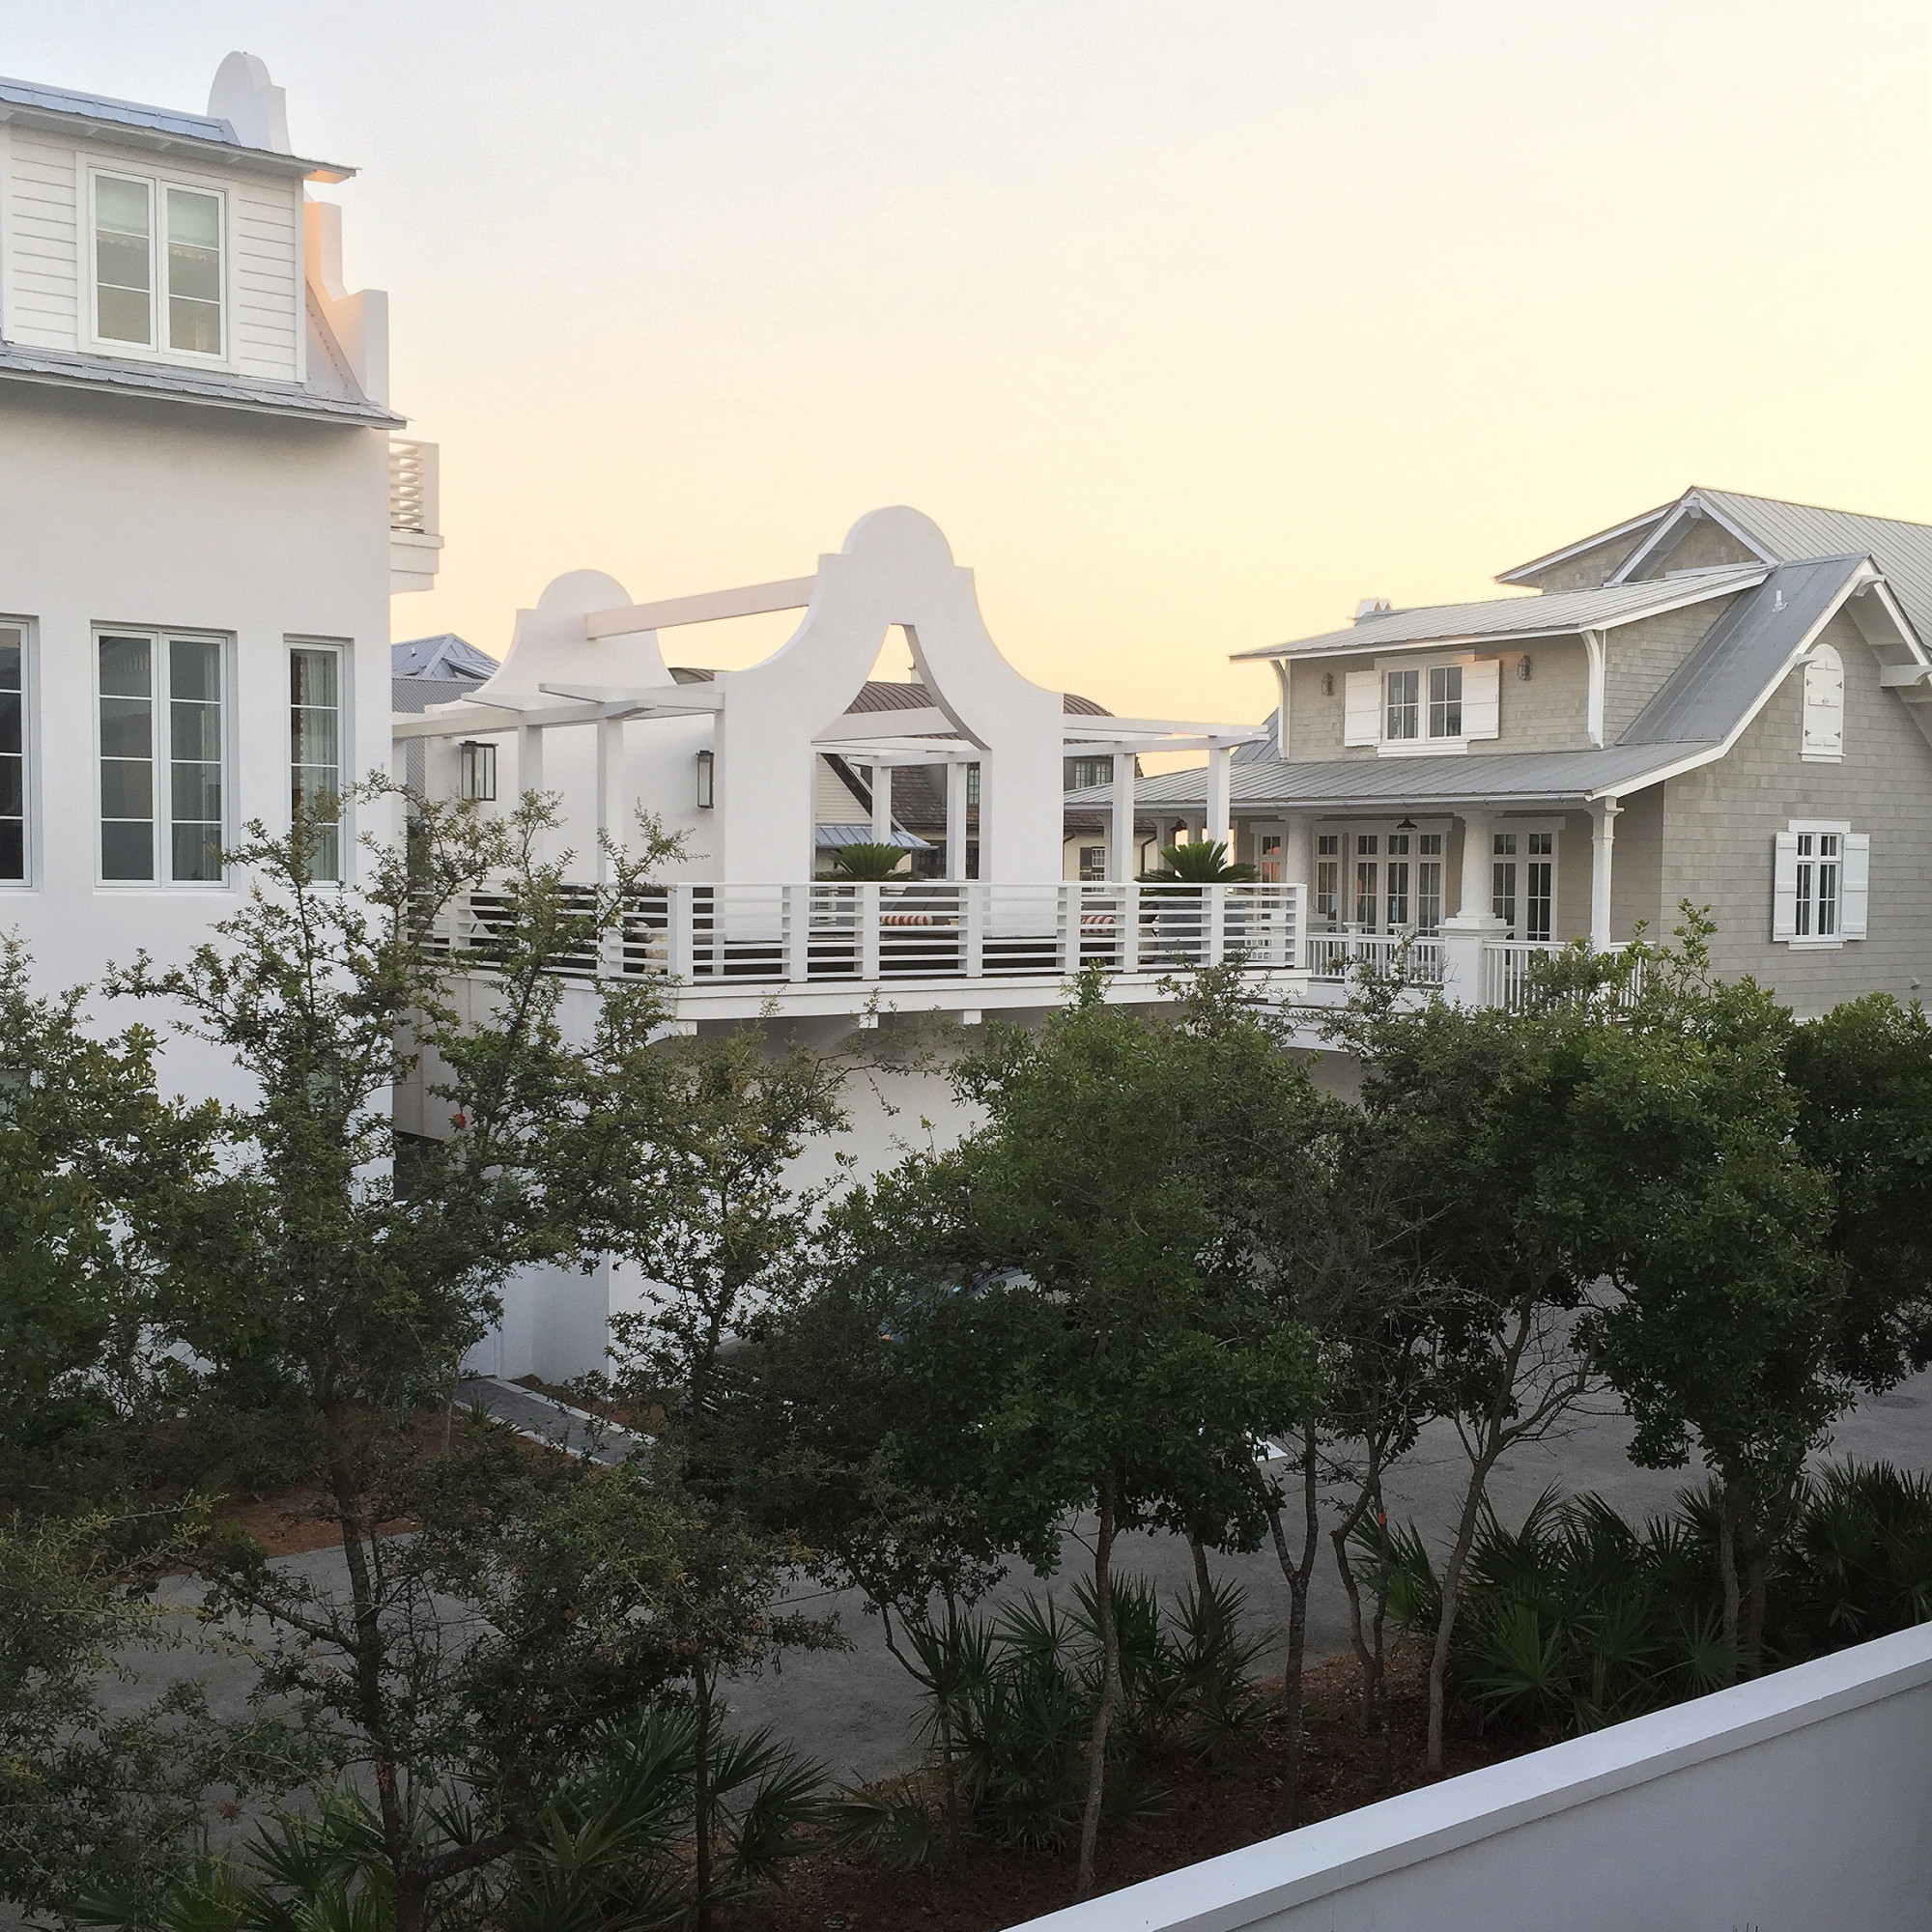 Dosaygive Travels Rosemary Beach Guide